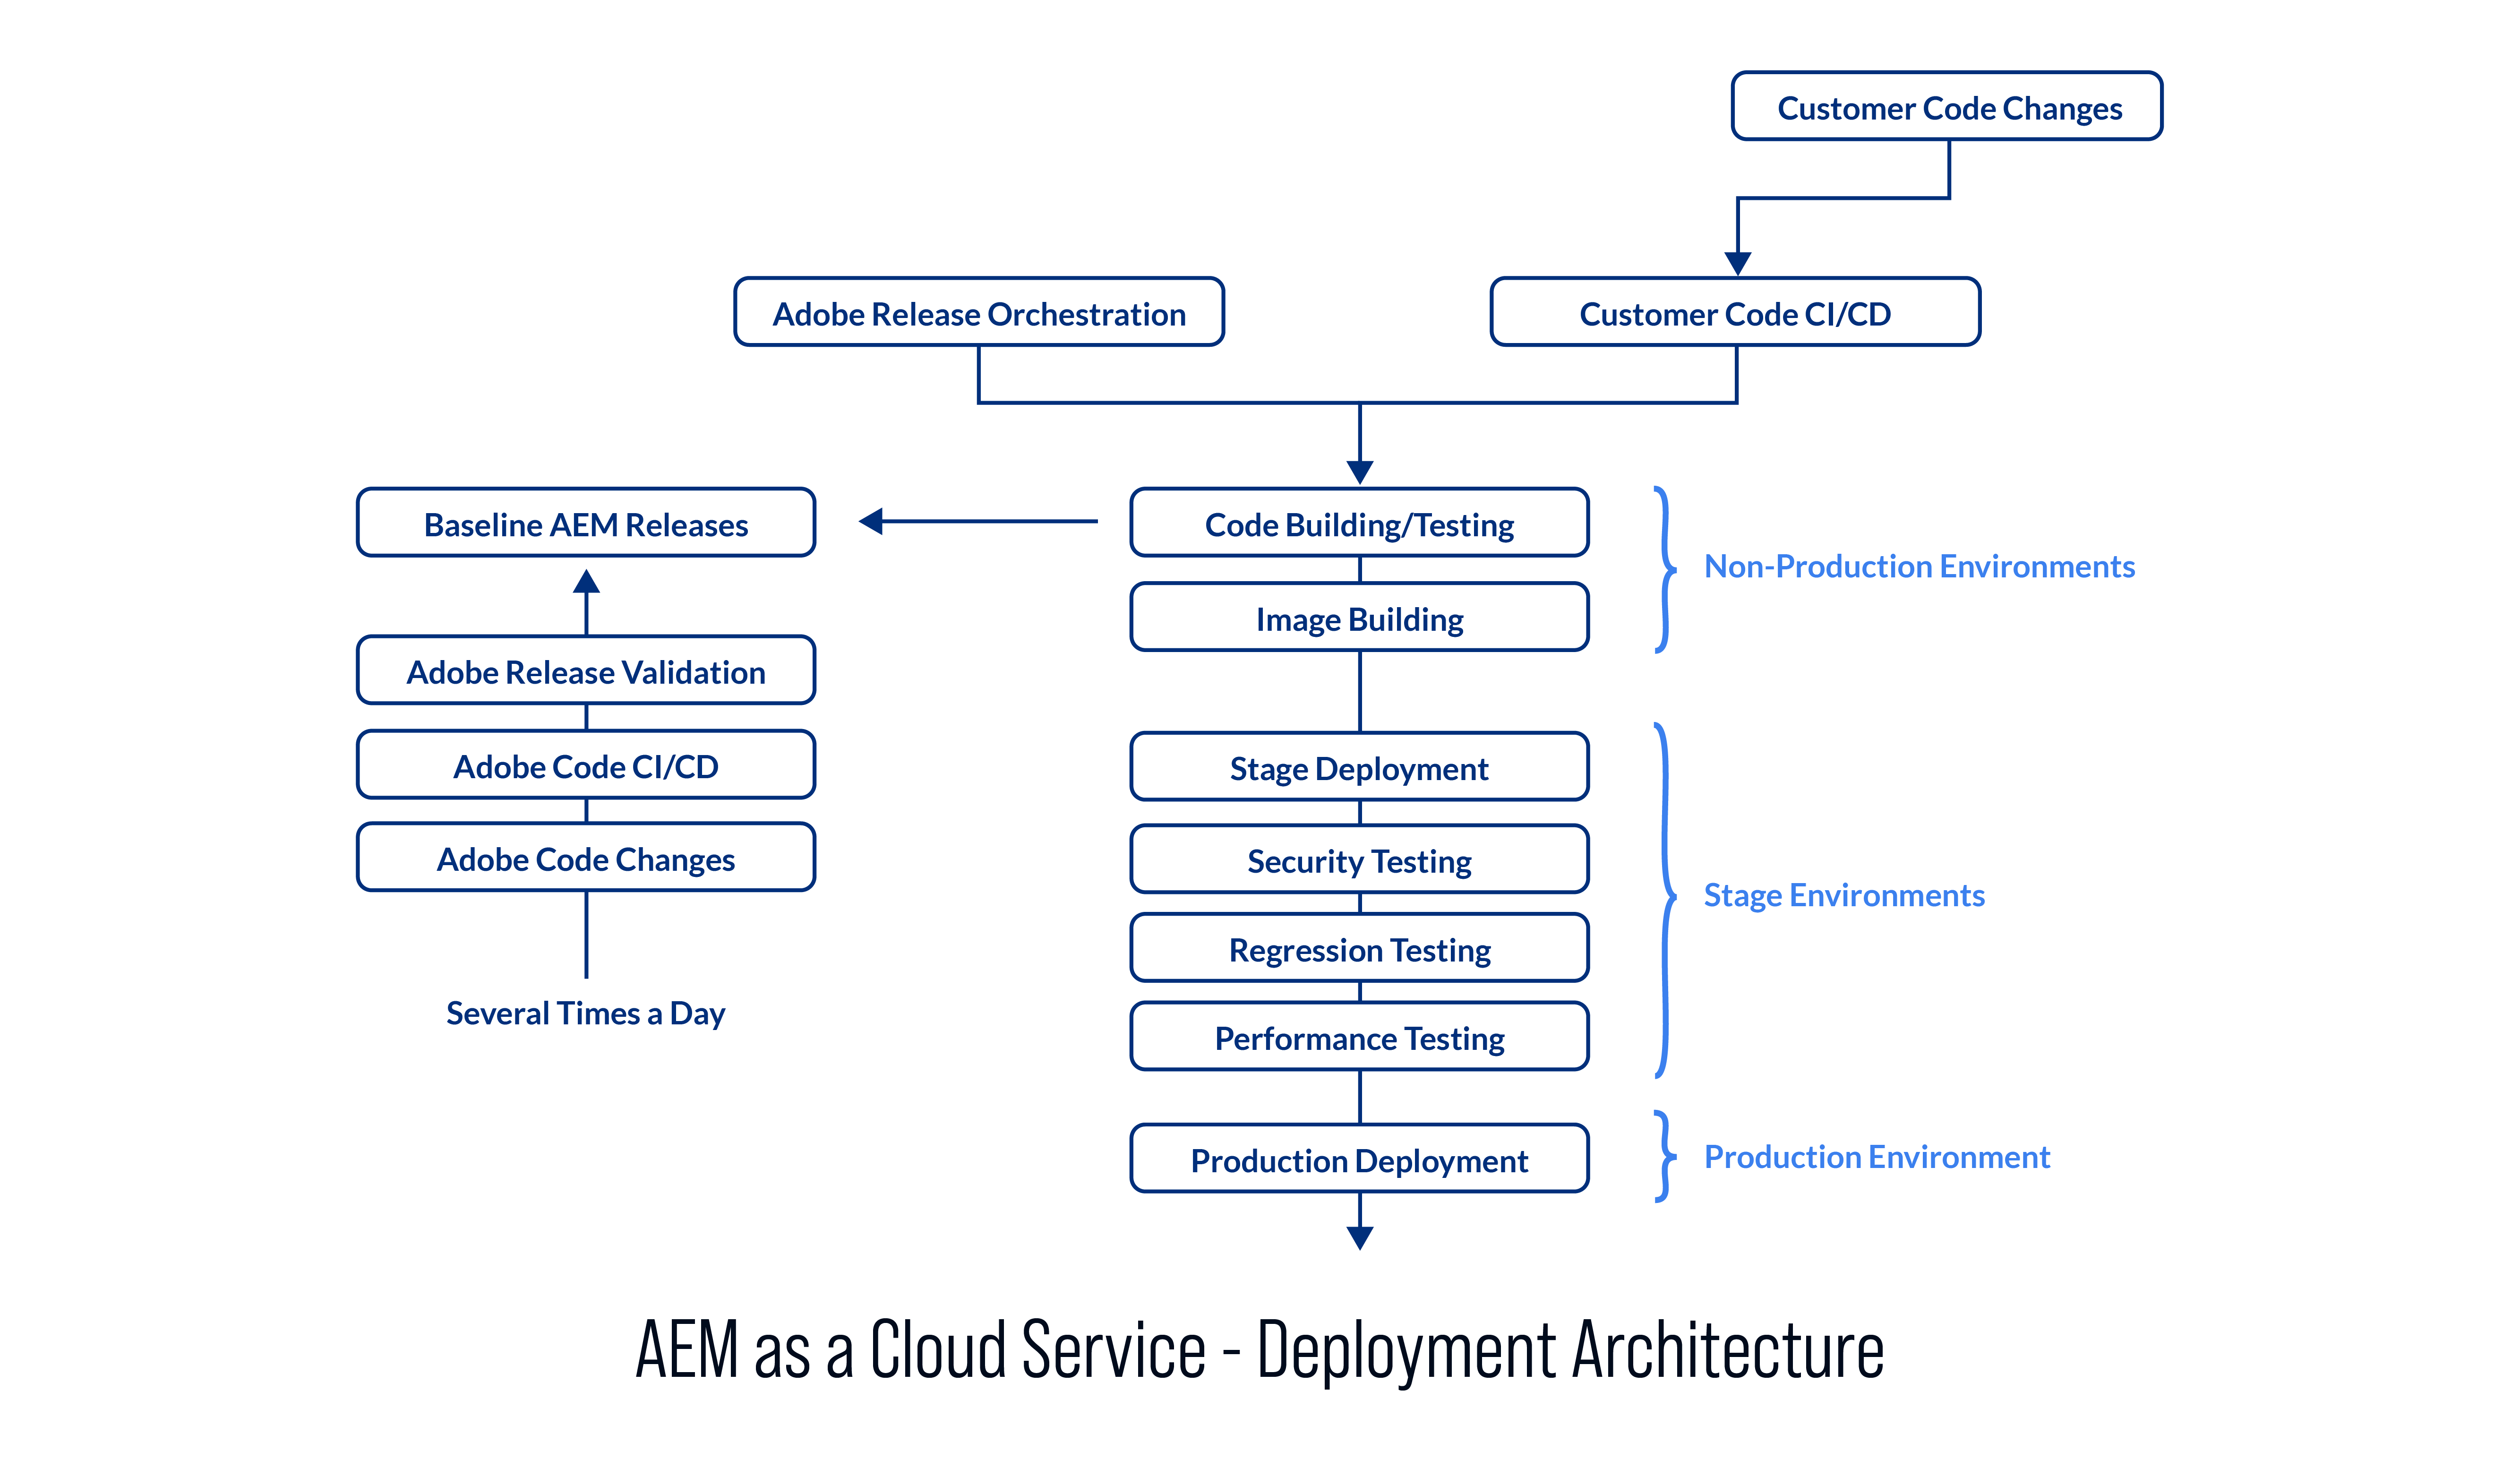 AEM as a Cloud Service: Moving from Adobe Managed Infrastructure to Cloud Service